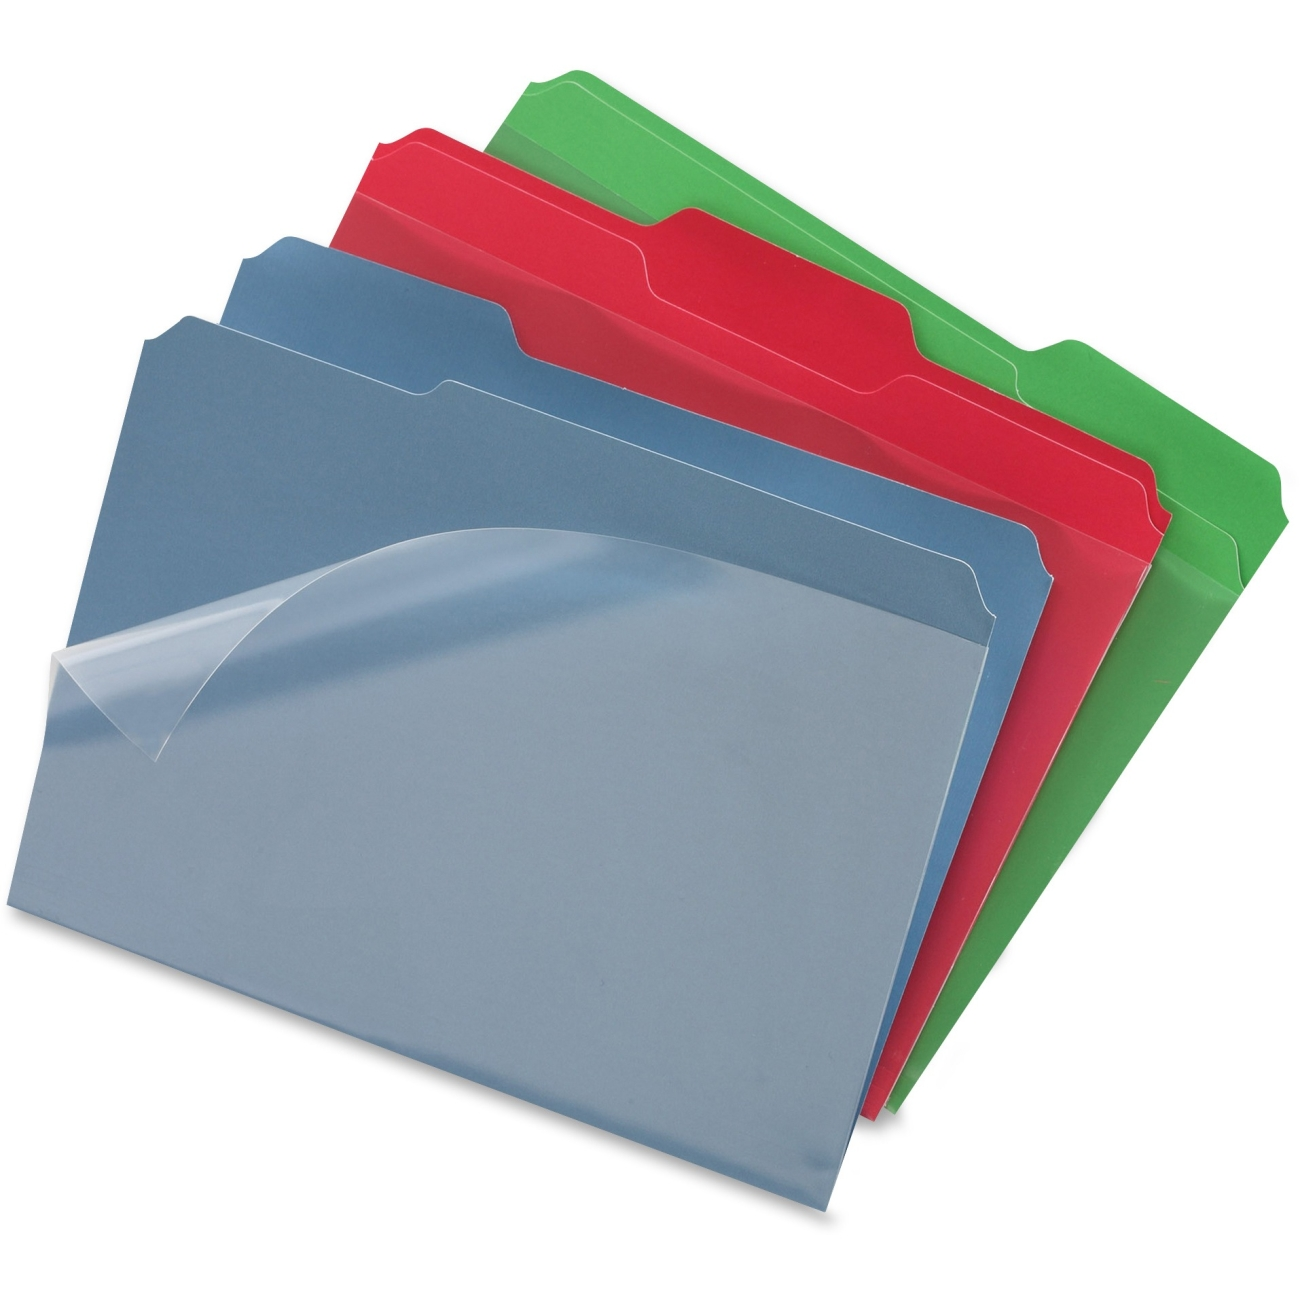 IdeaStream Filing Supplies